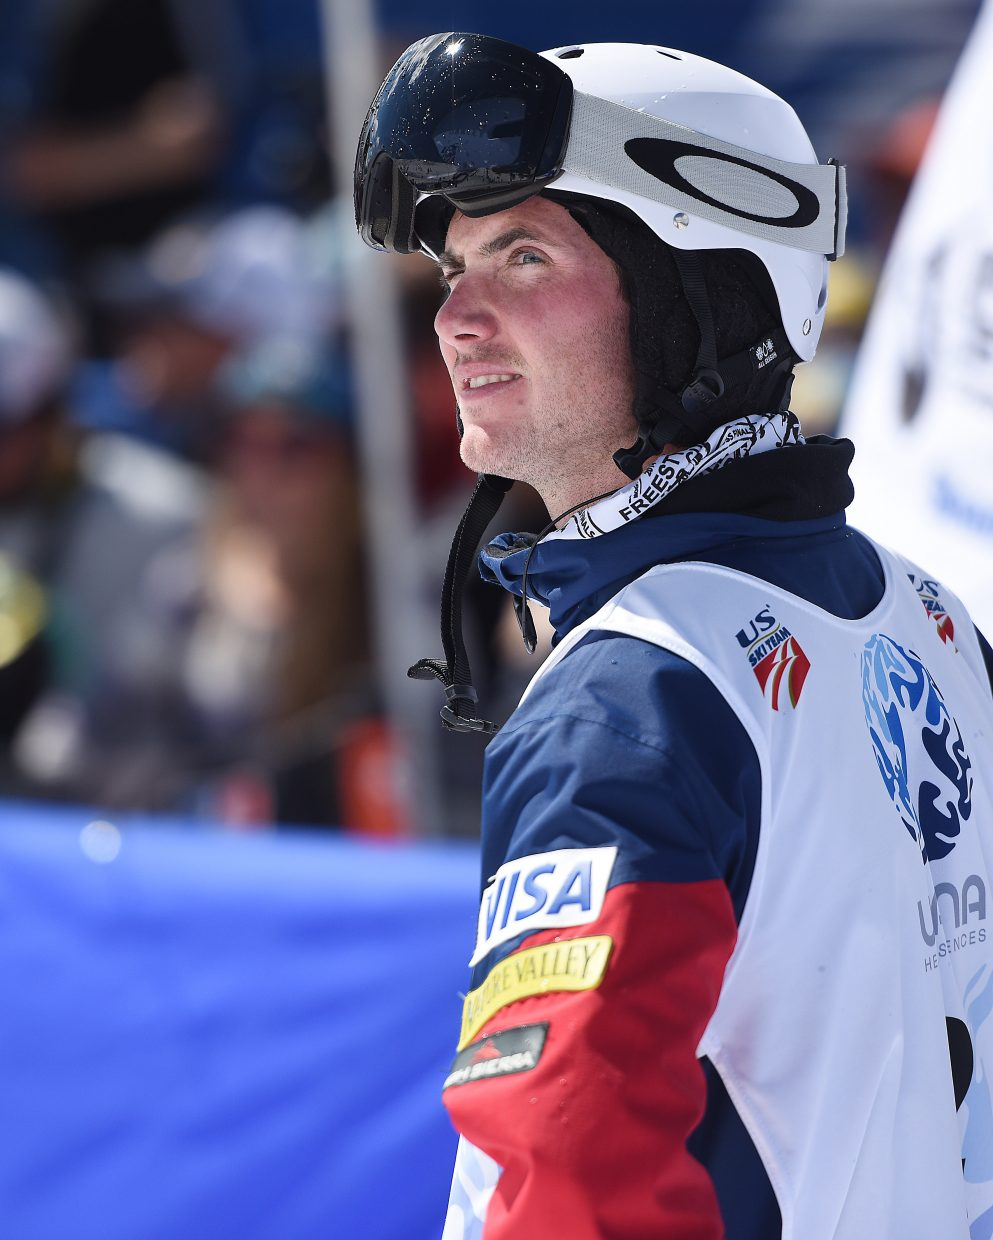 Steamboat Springs skier Jeremy Cota looks back up the moguls run Friday after he threw him for a loop. He qualified third, but couldn't finish his finals run.